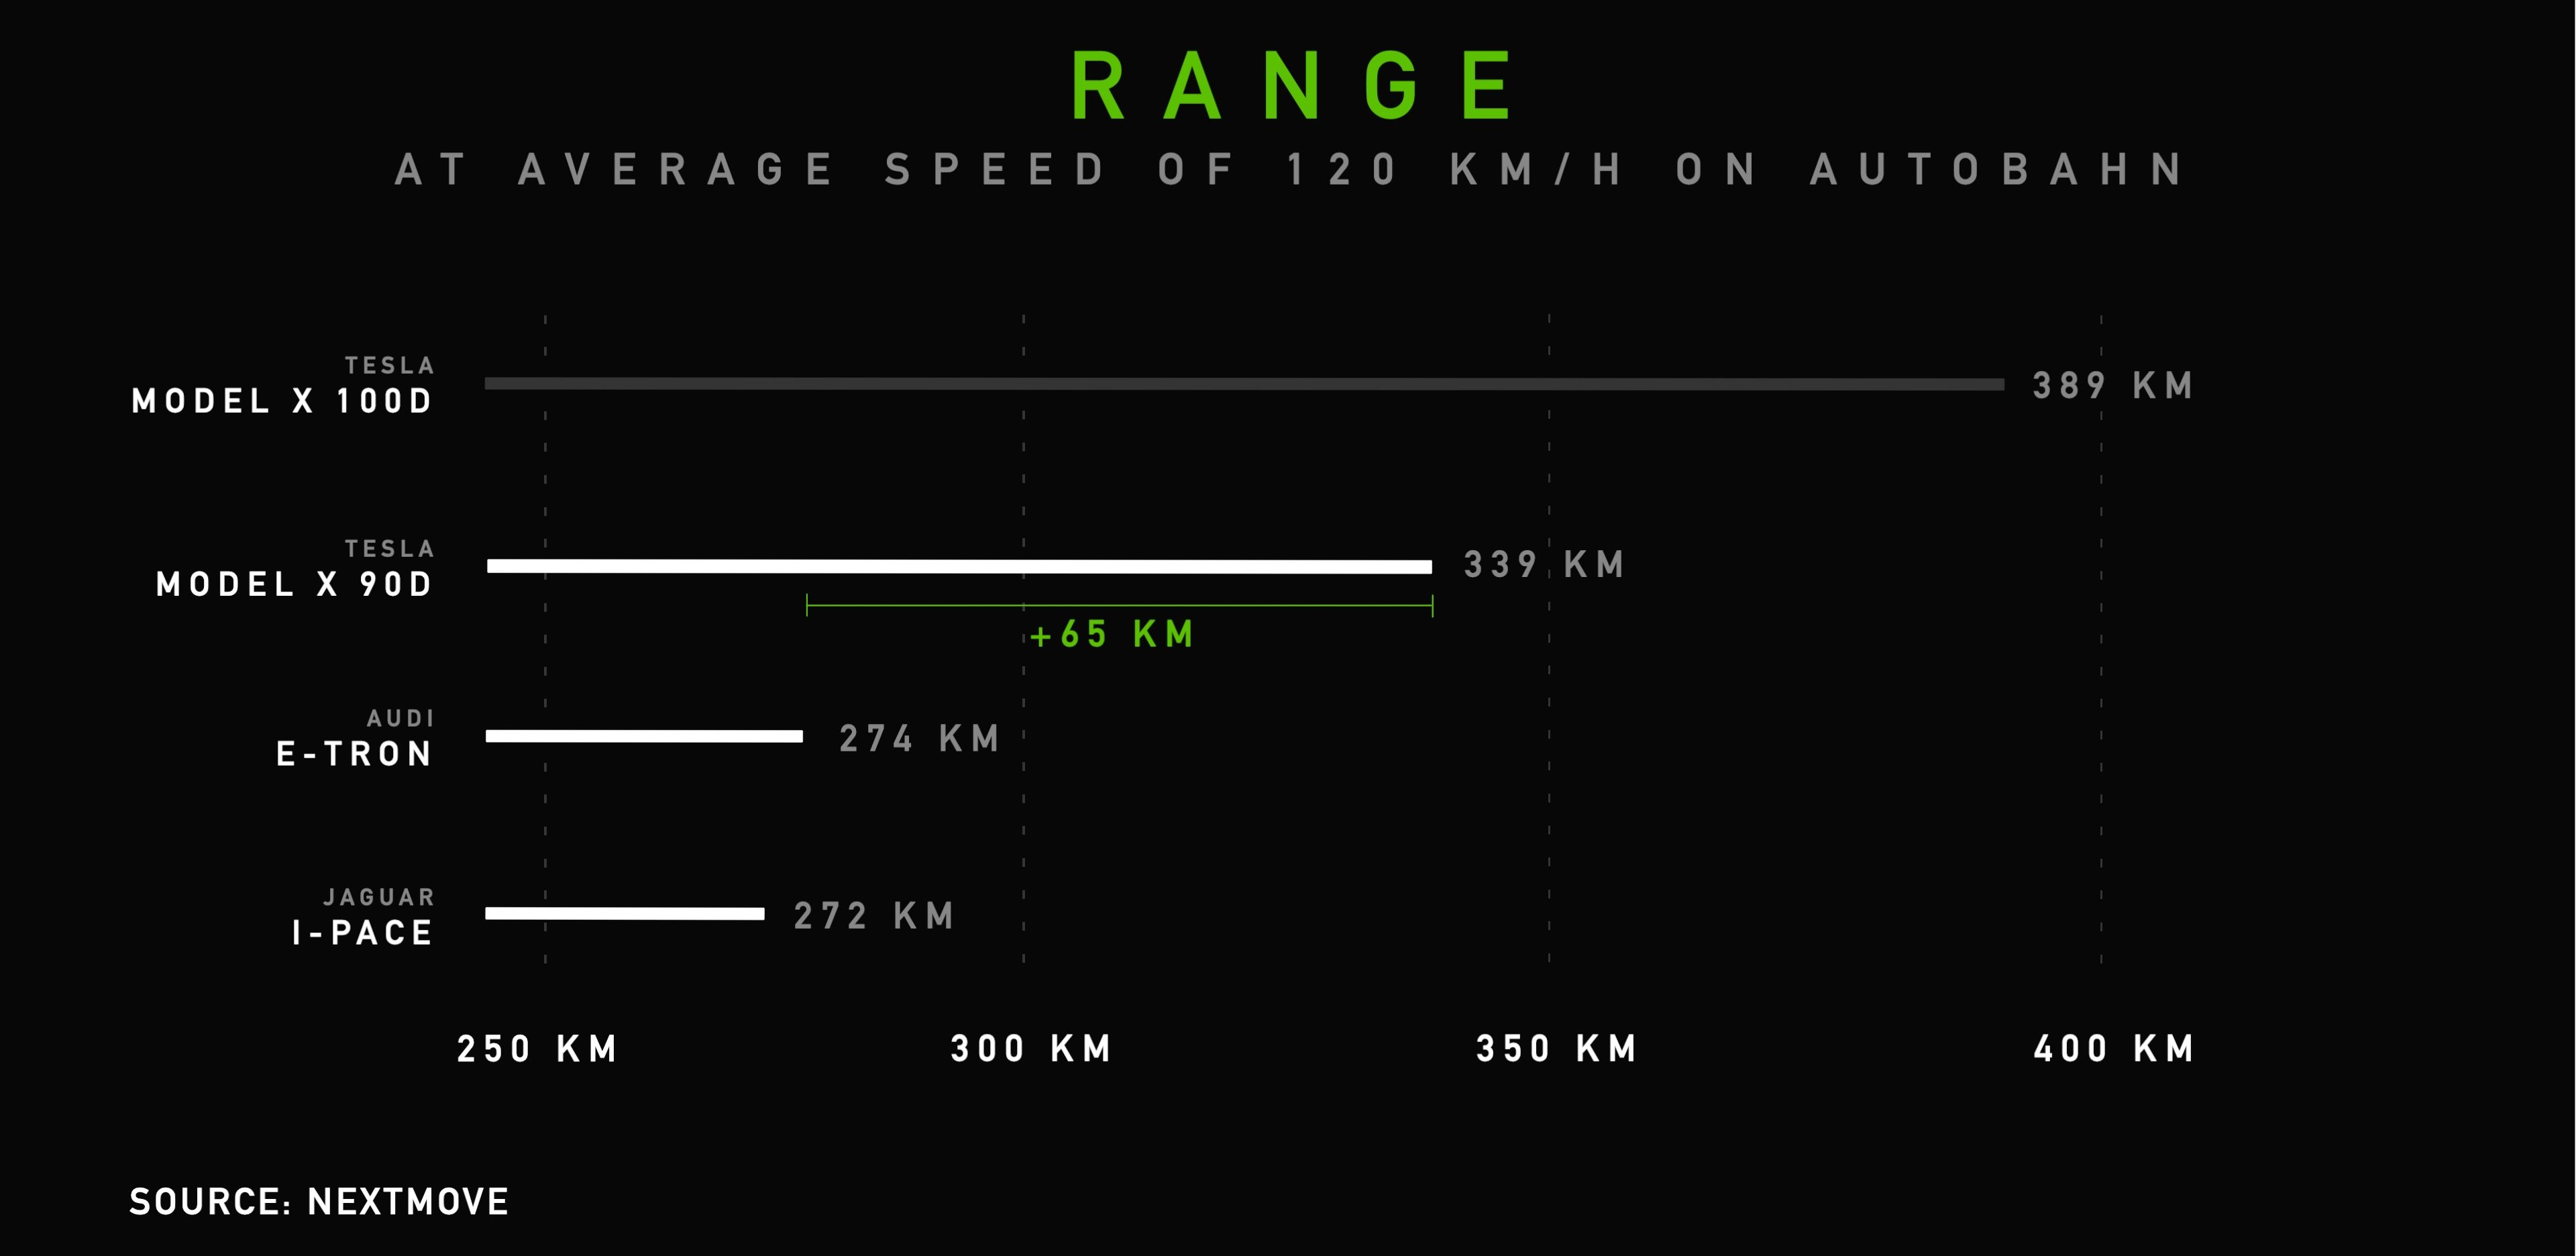 3_Range_EN-Audi-etron-Tesla-Model-X-Jaguar-I-PACE-Range-Consumption-Test-nextmove